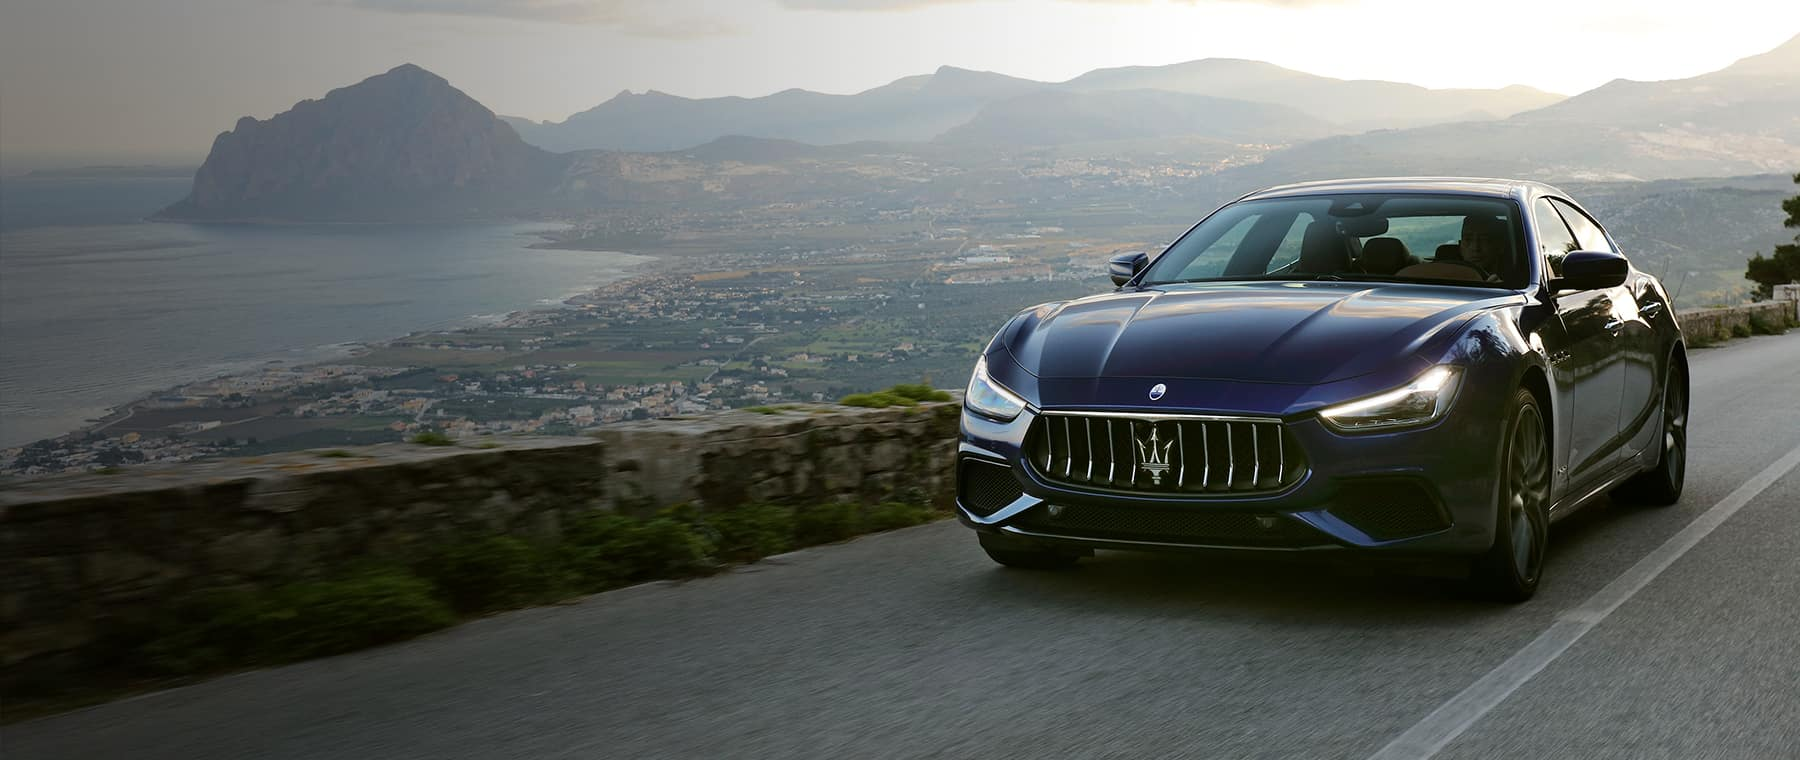 Maserati driving down a curving road in the mountains